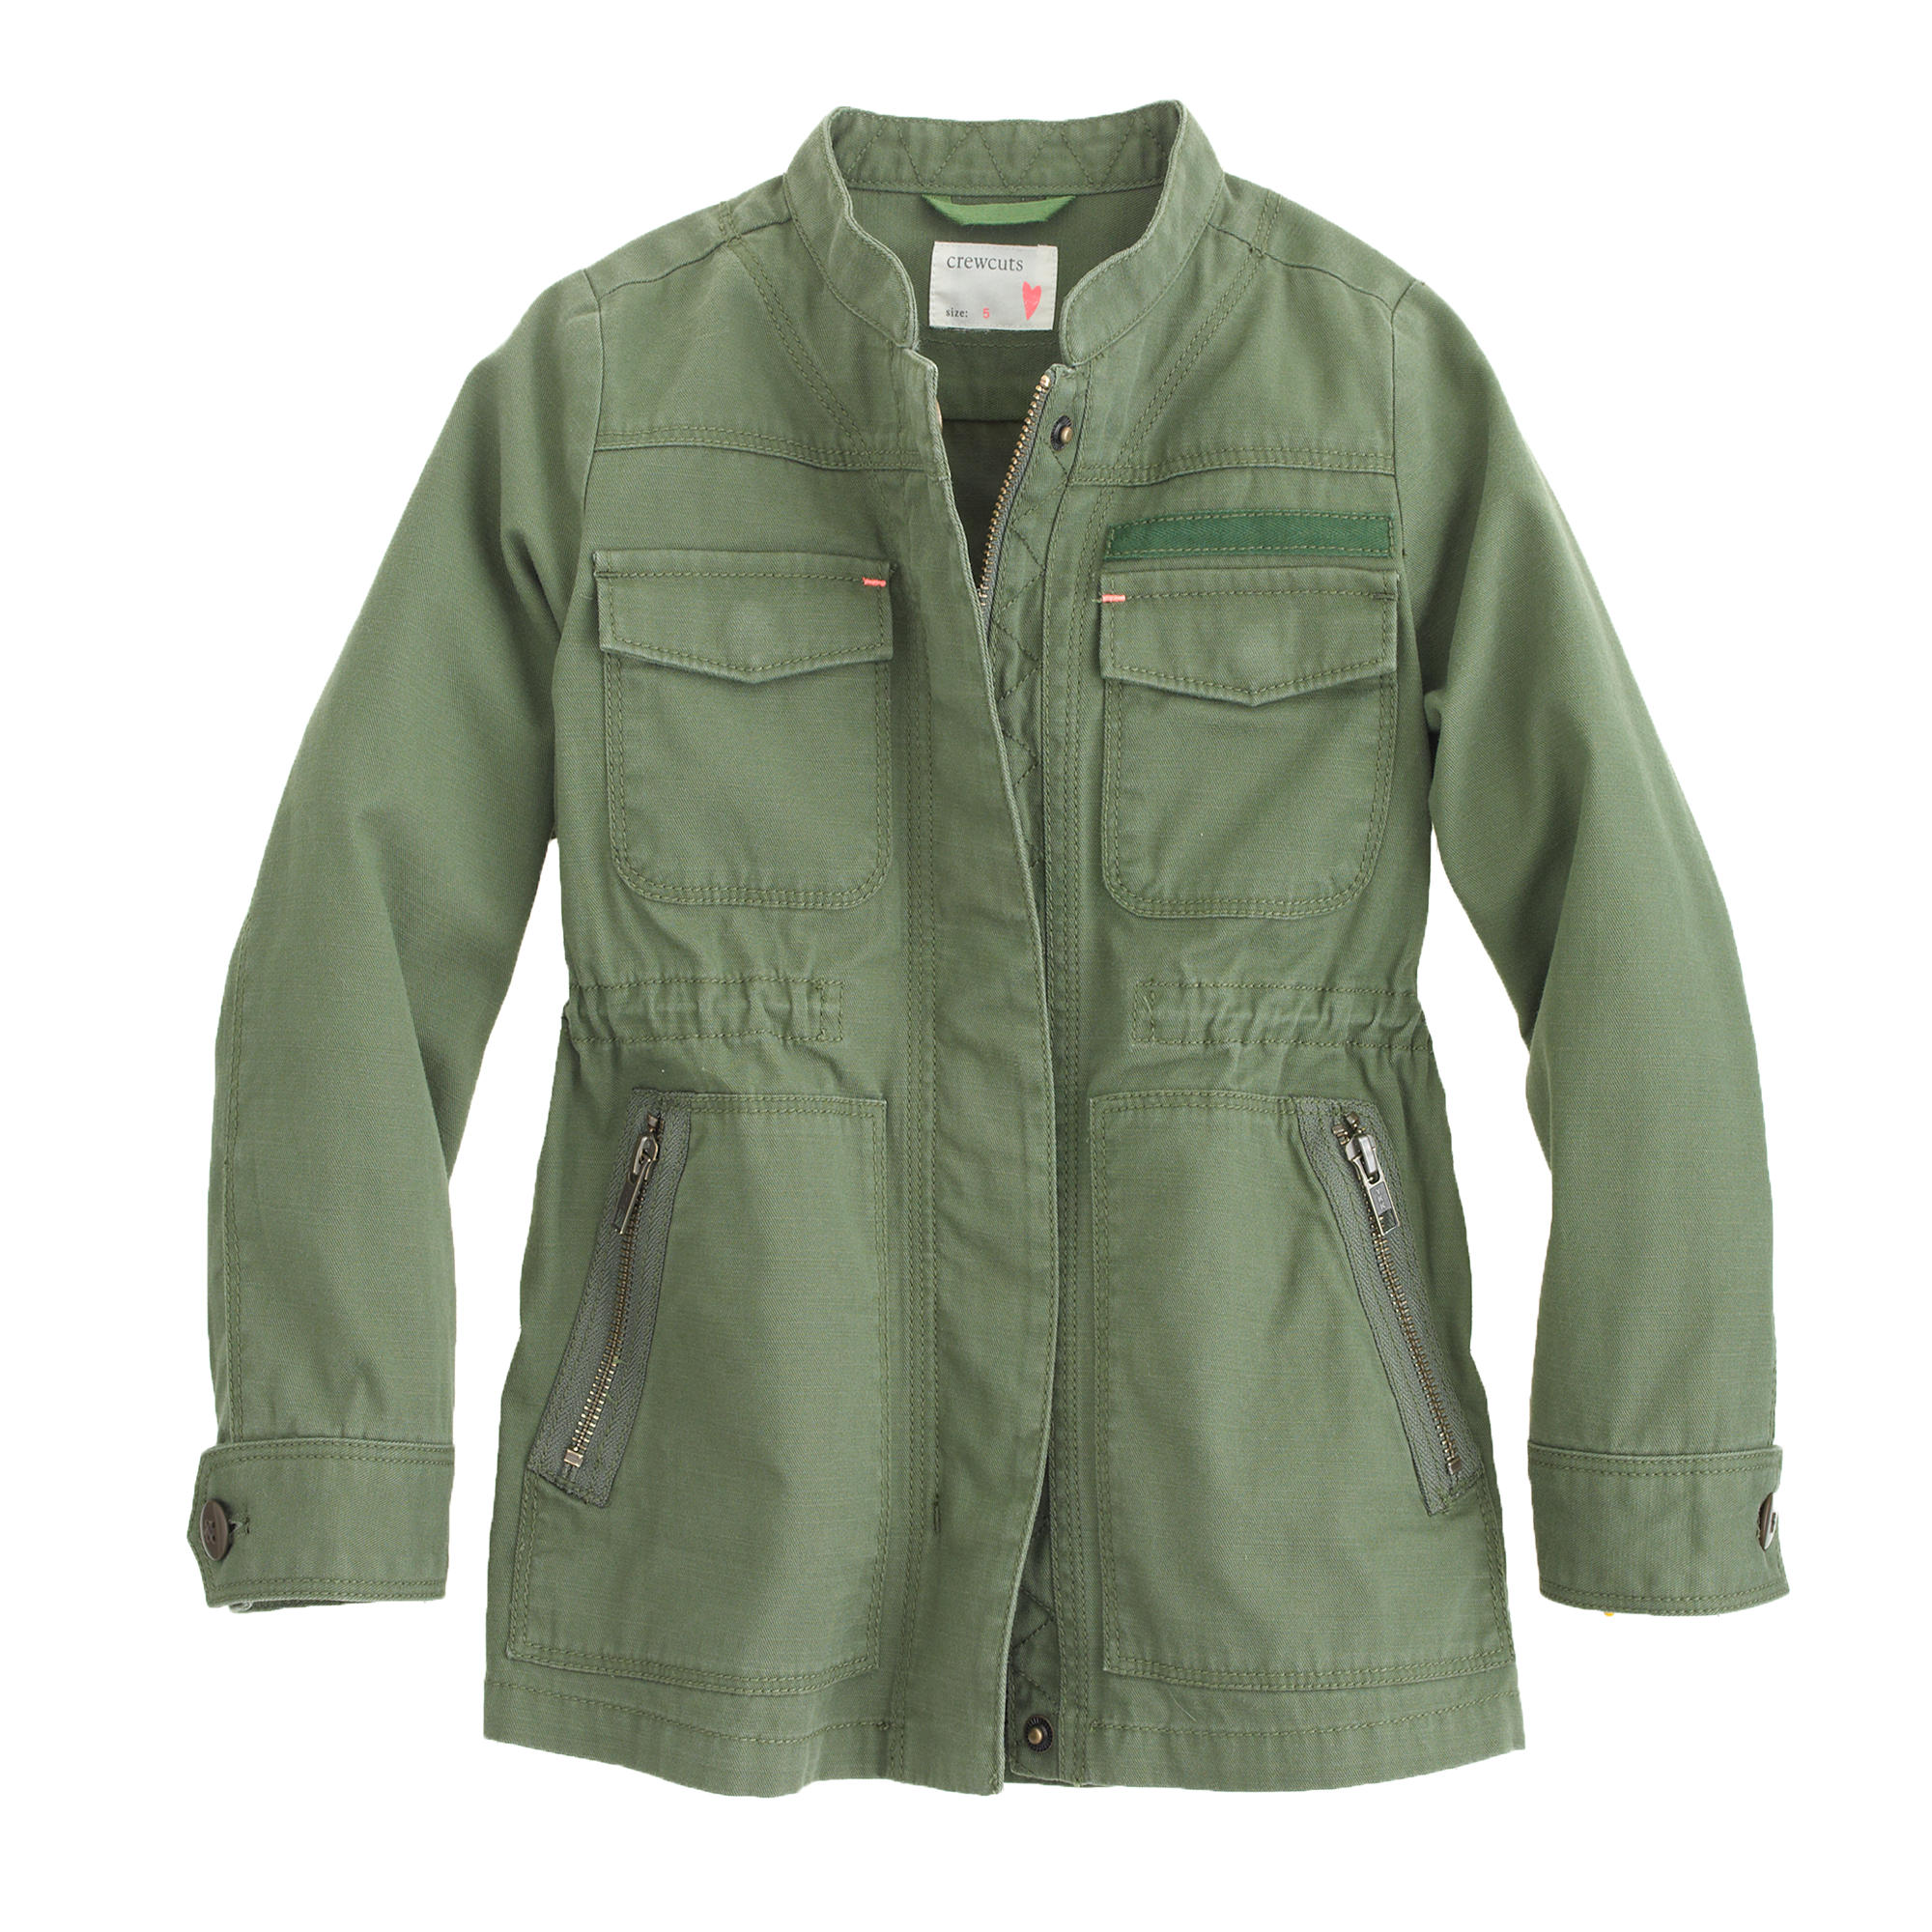 hereufilbk.gq: army green jacket girls. From The Community. Amazon Try Prime All Trendy and rugged hooded jacket. Army green color that's perfect for Winter. WenVen Boy's and Girl's Hooded Work Active Jacket. by WenVen. $ - $ $ 35 $ .